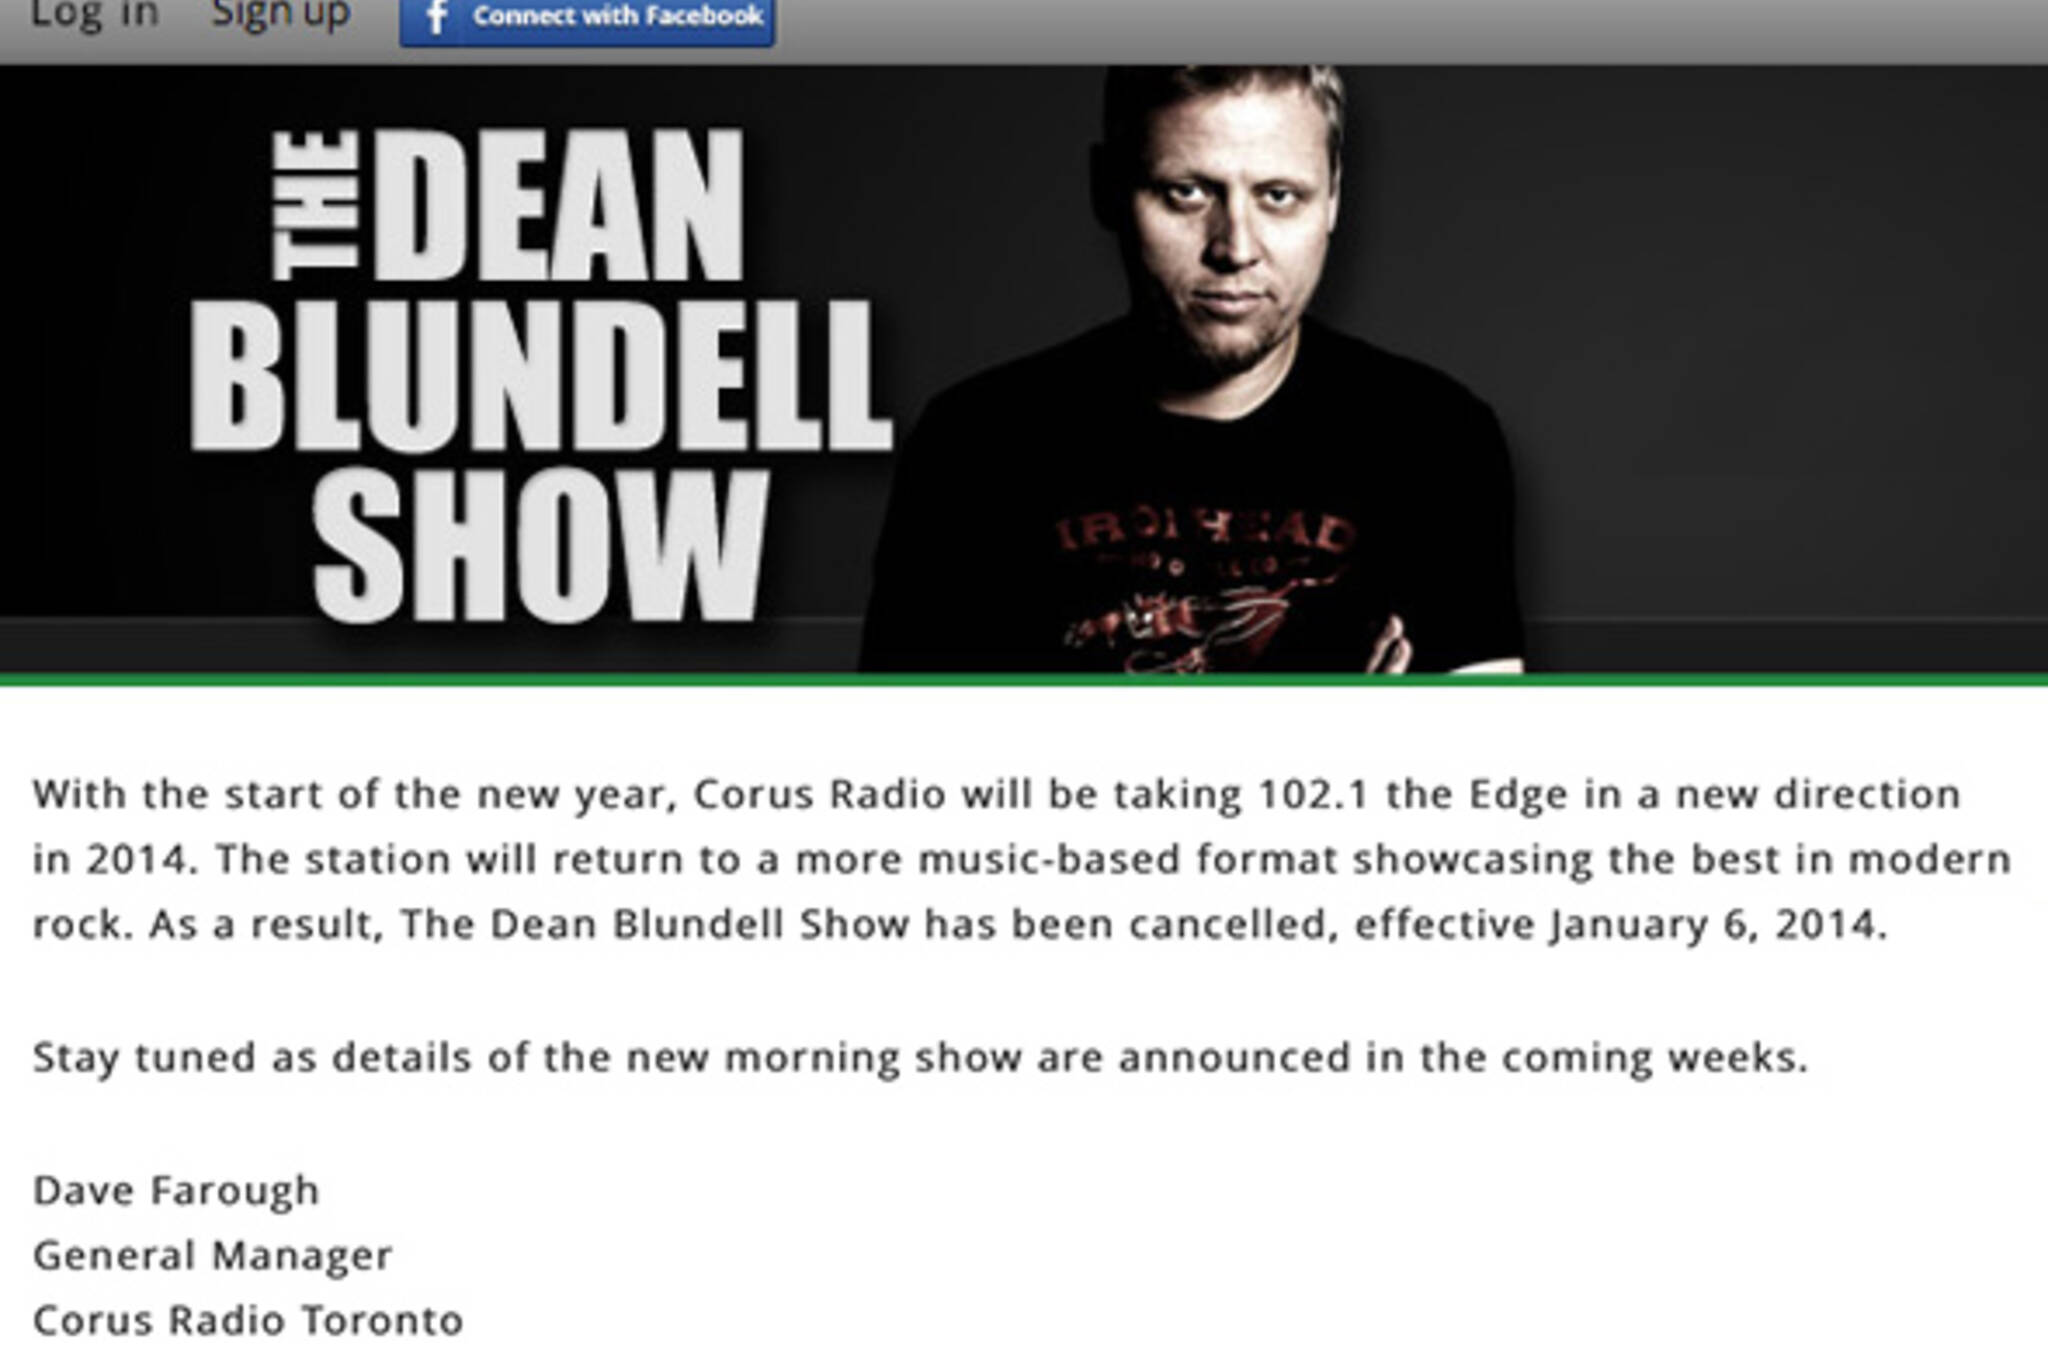 Dean Blundell Show Cancelled